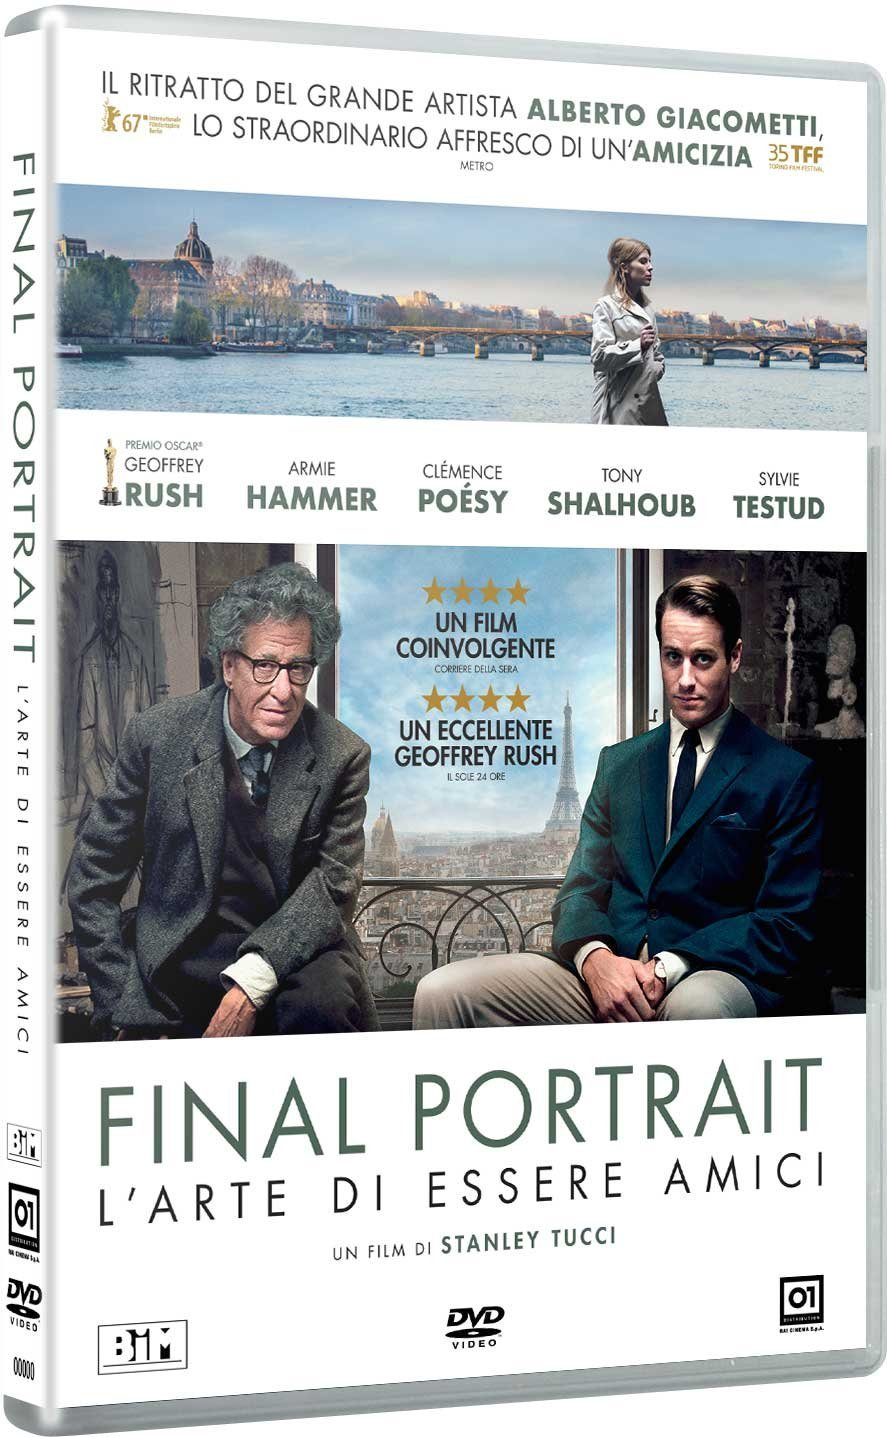 FINAL PORTRAIT - L'ARTE DI ESSERE AMICI (DVD)